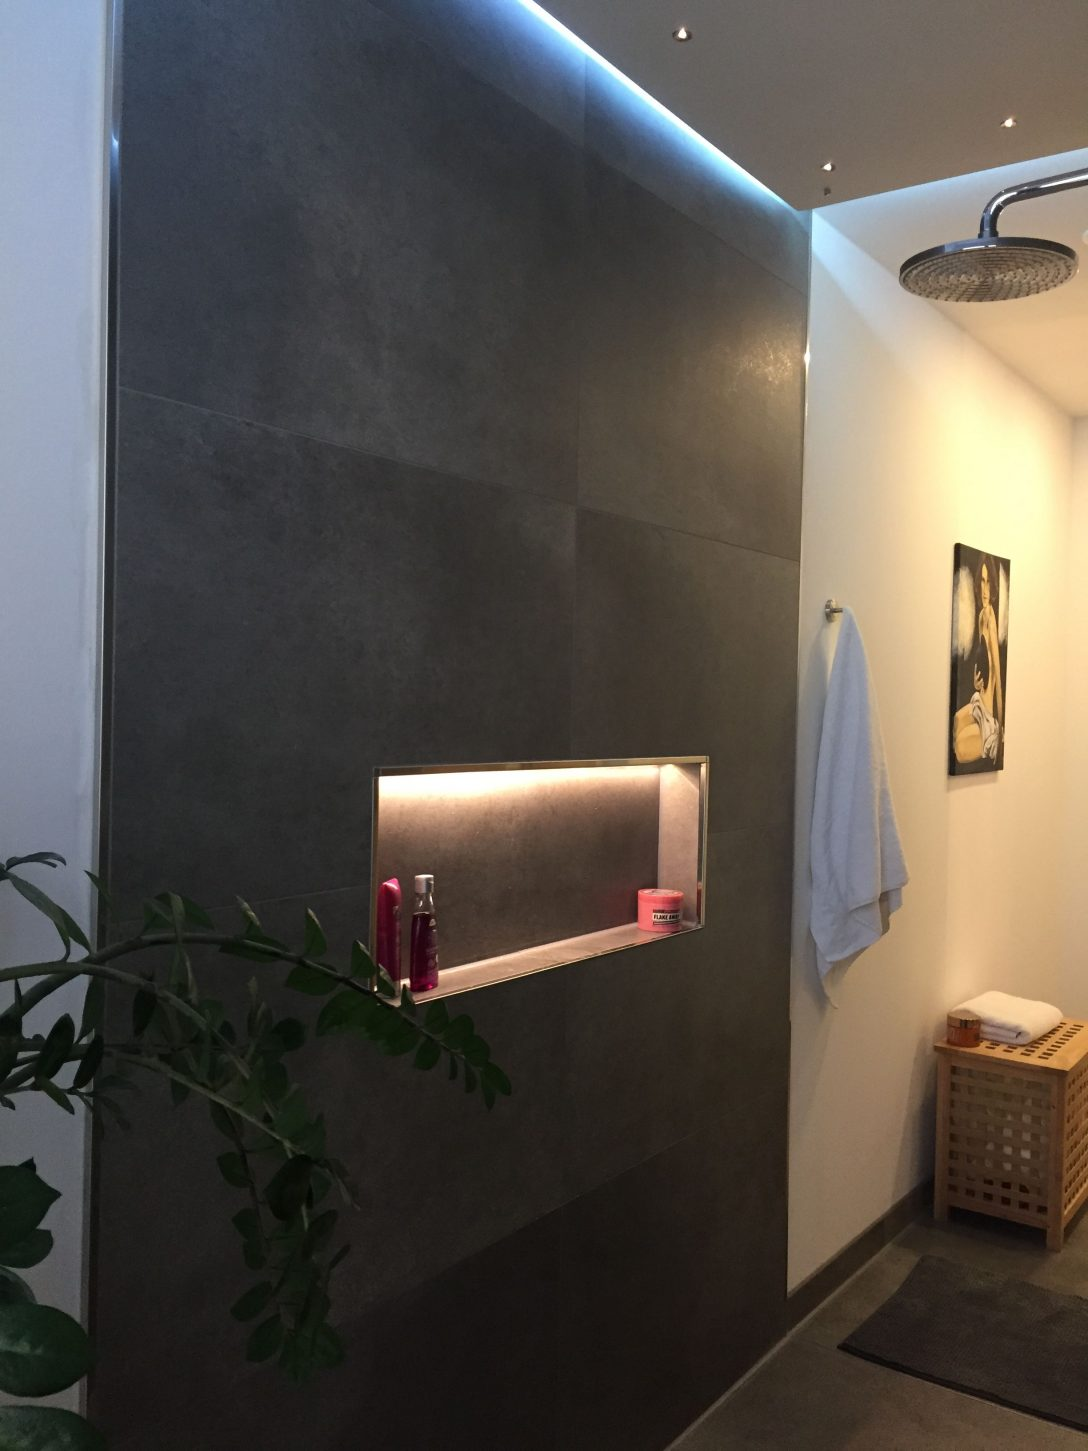 Large Size of Led Beleuchtung Wohnzimmer Tipps Led Beleuchtung Wohnzimmer Ideen Led Beleuchtung Wohnzimmer Indirekt Wohnzimmer Beleuchtung Led Leiste Wohnzimmer Led Beleuchtung Wohnzimmer